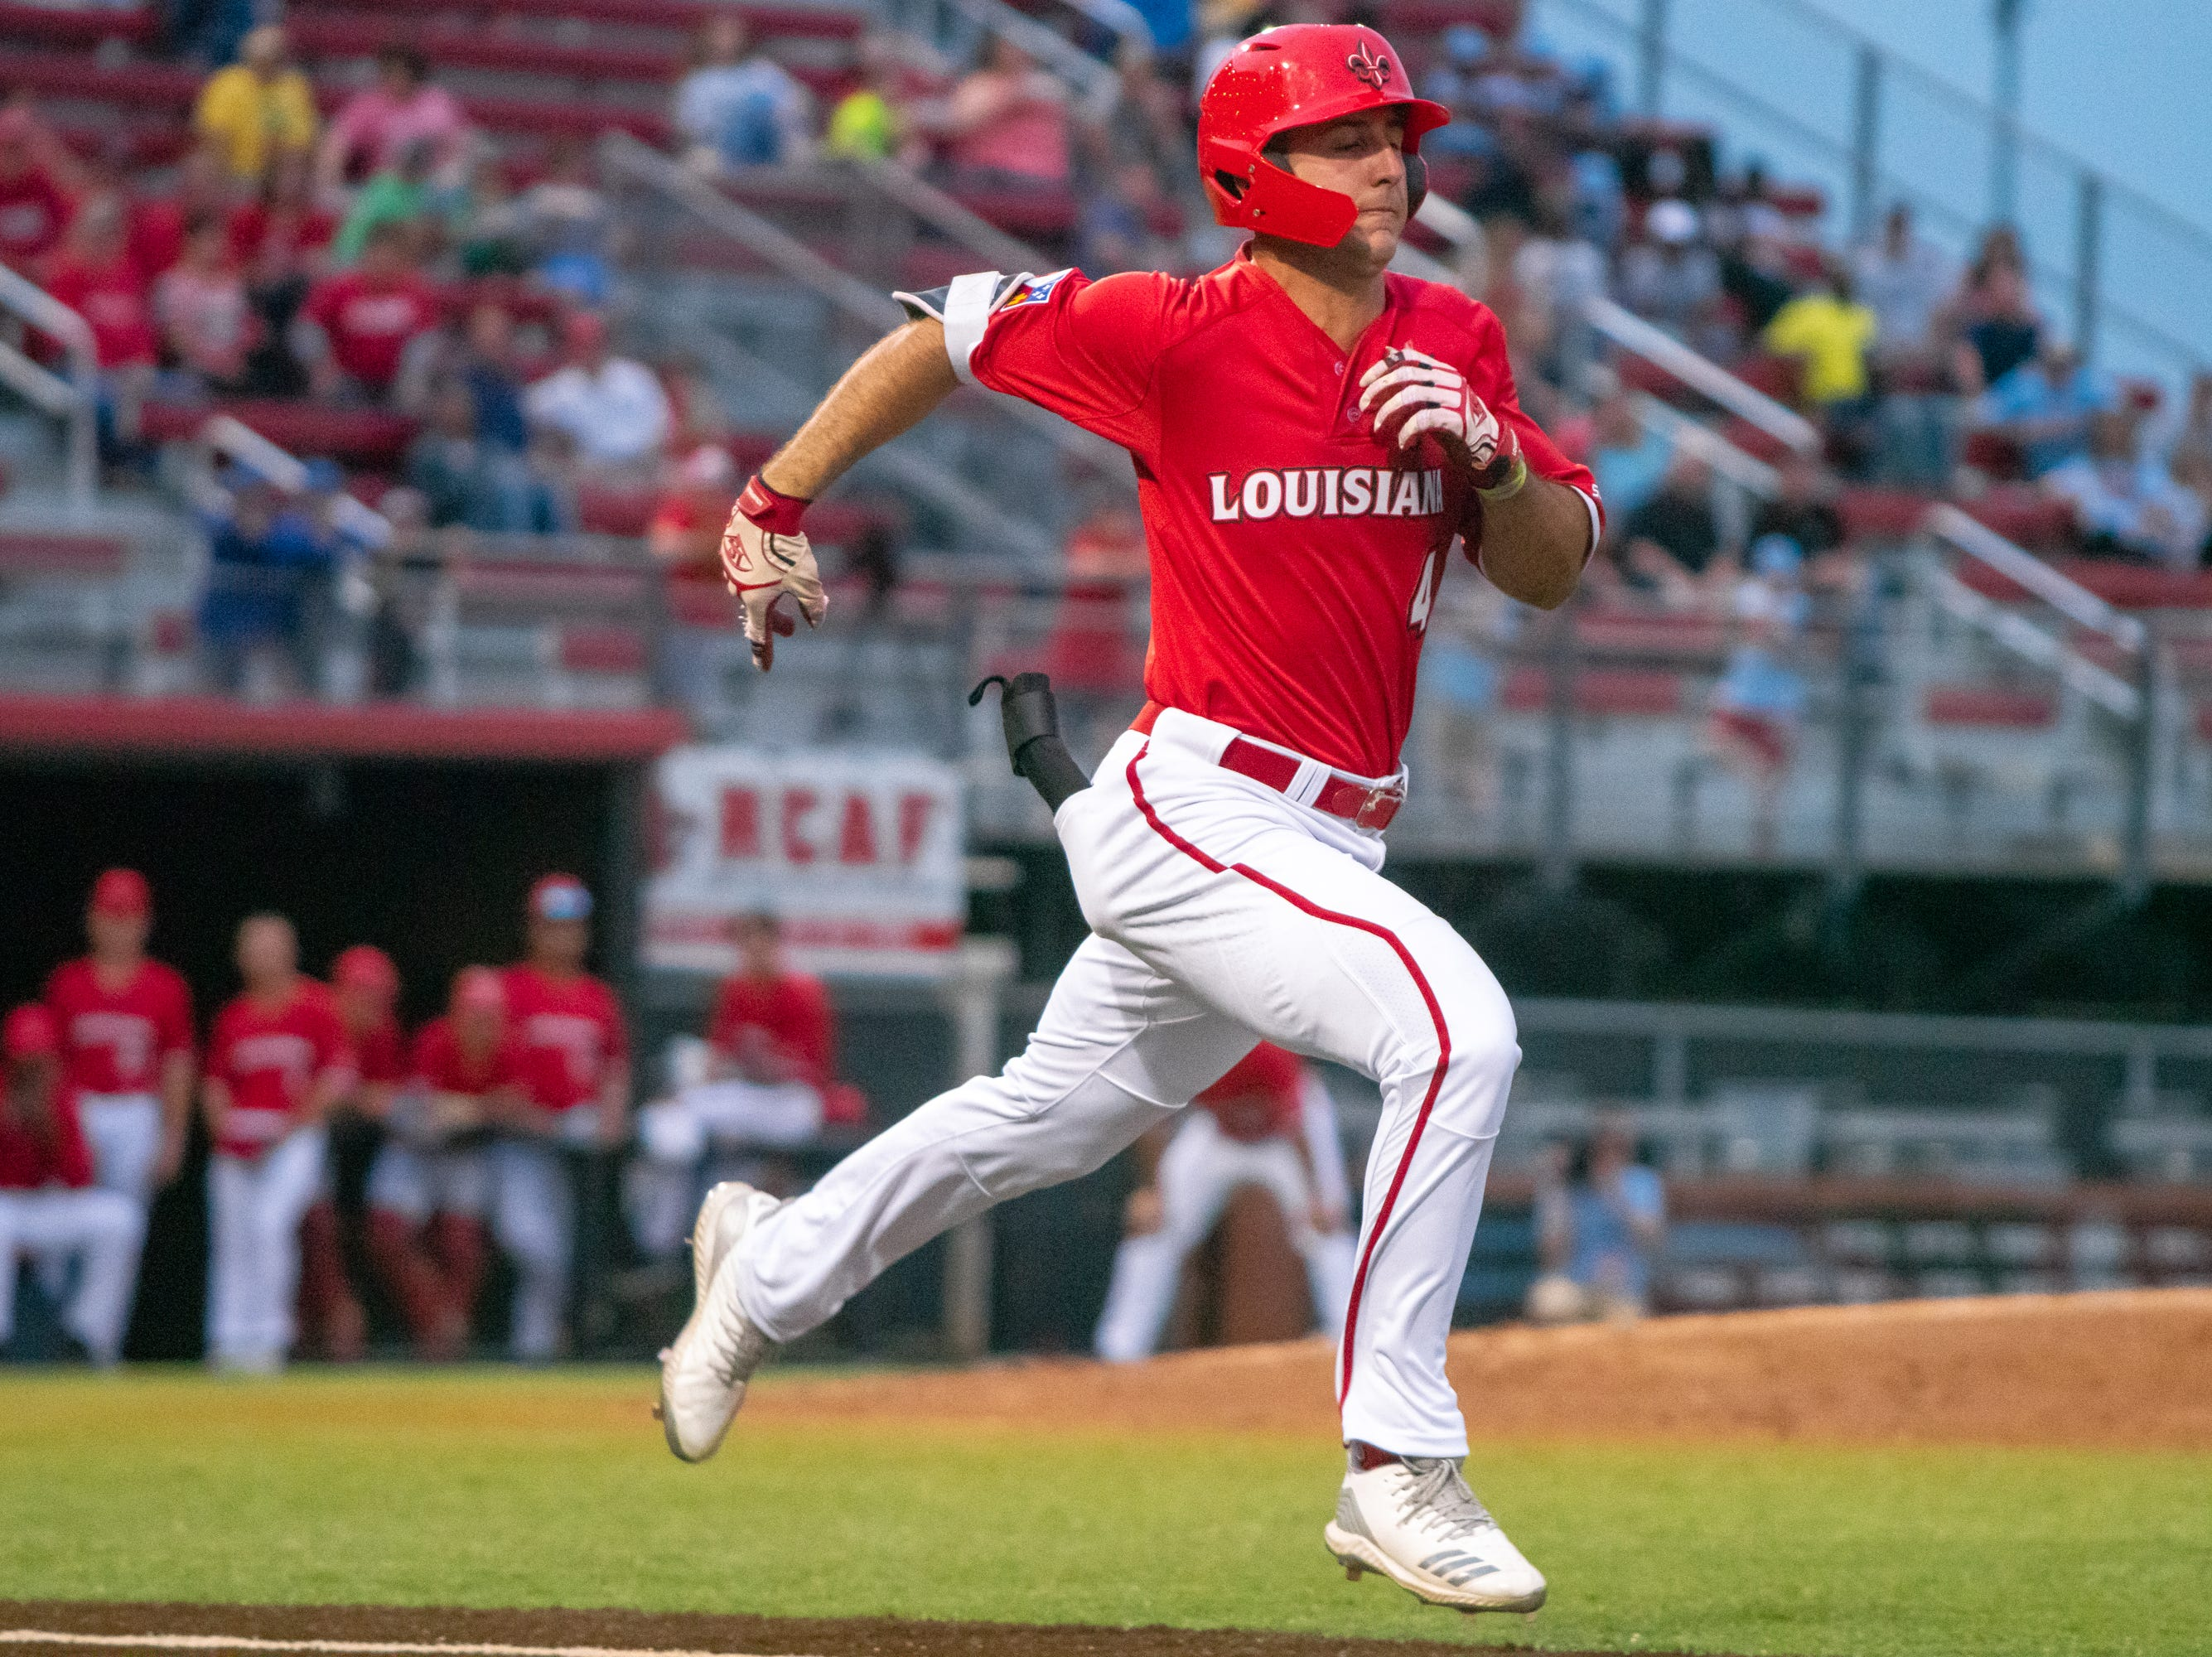 """UL's Brennan Breaux rushes to first base as the Ragin' Cajuns take on the South Alabama Jaguars at M.L. """"Tigue"""" Moore Field on Friday, April 4, 2019."""